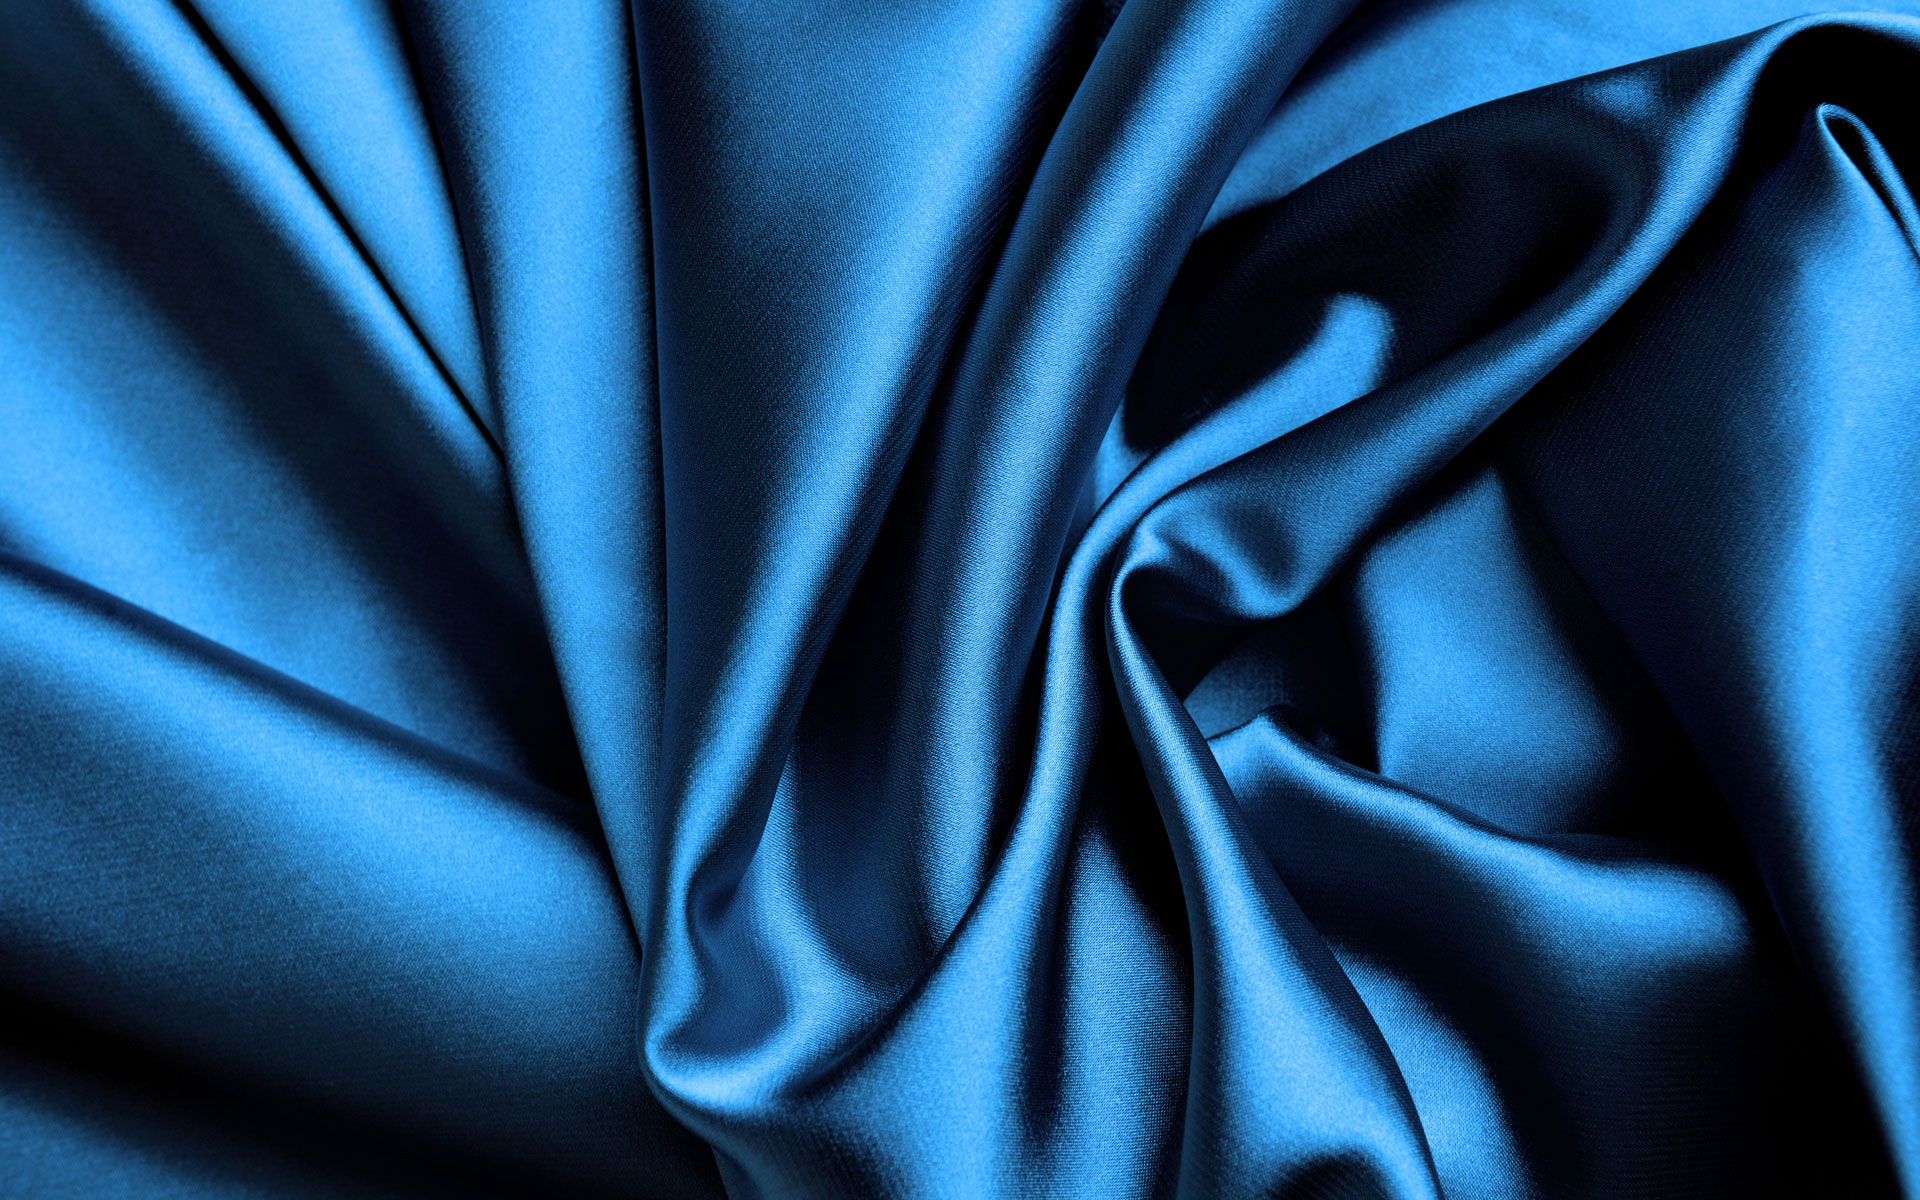 blue-silk-hd-widescreen-wallpapers-1920x1200